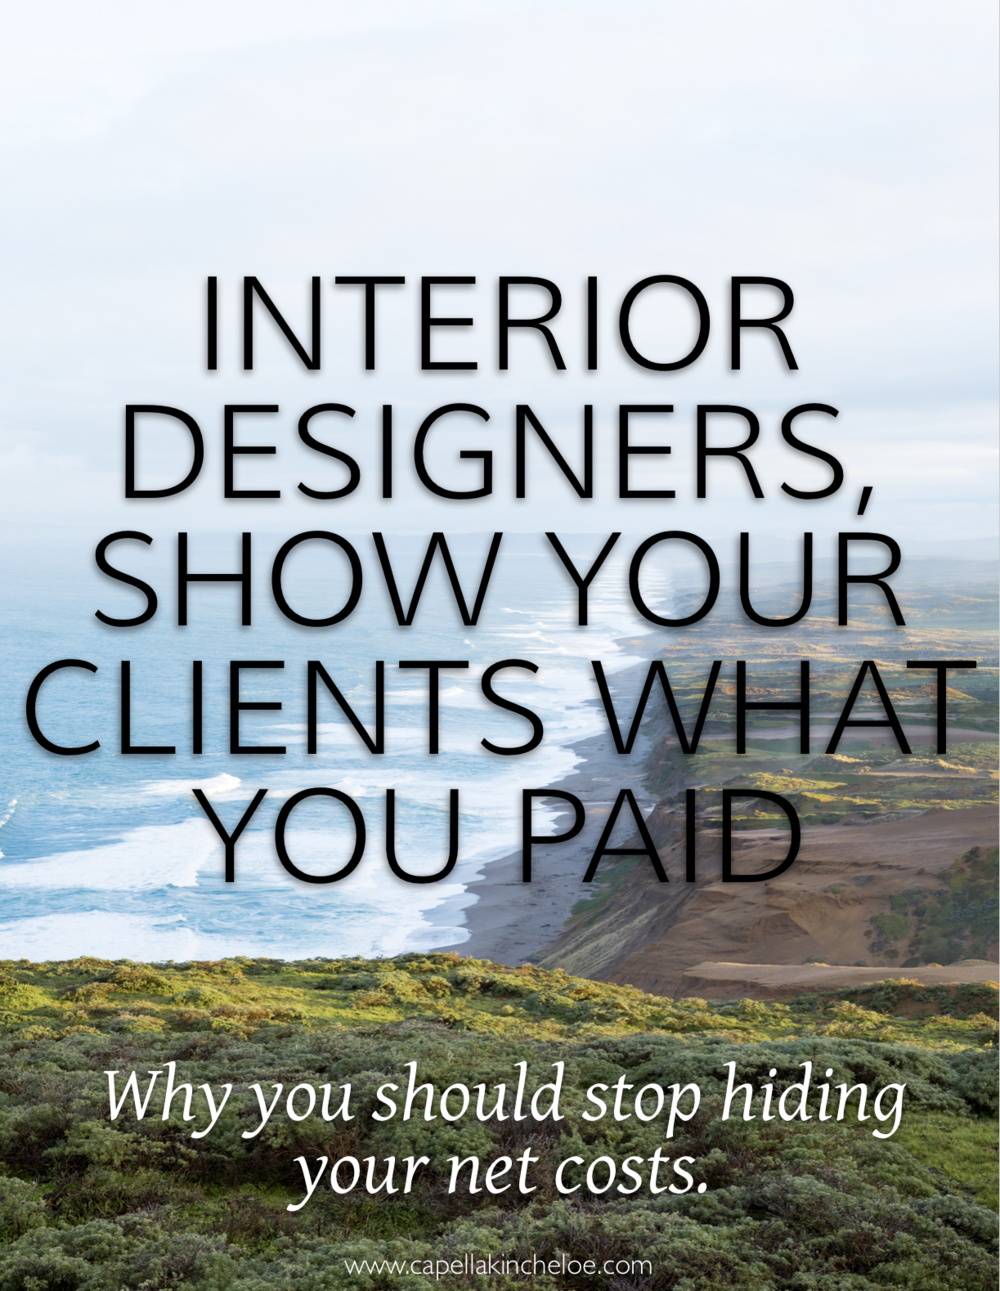 Interior Designers, it's time to stop hiding your designer pricing from your clients.  Learn why it could be better for your business and clients if you just showed your clients what you paid.